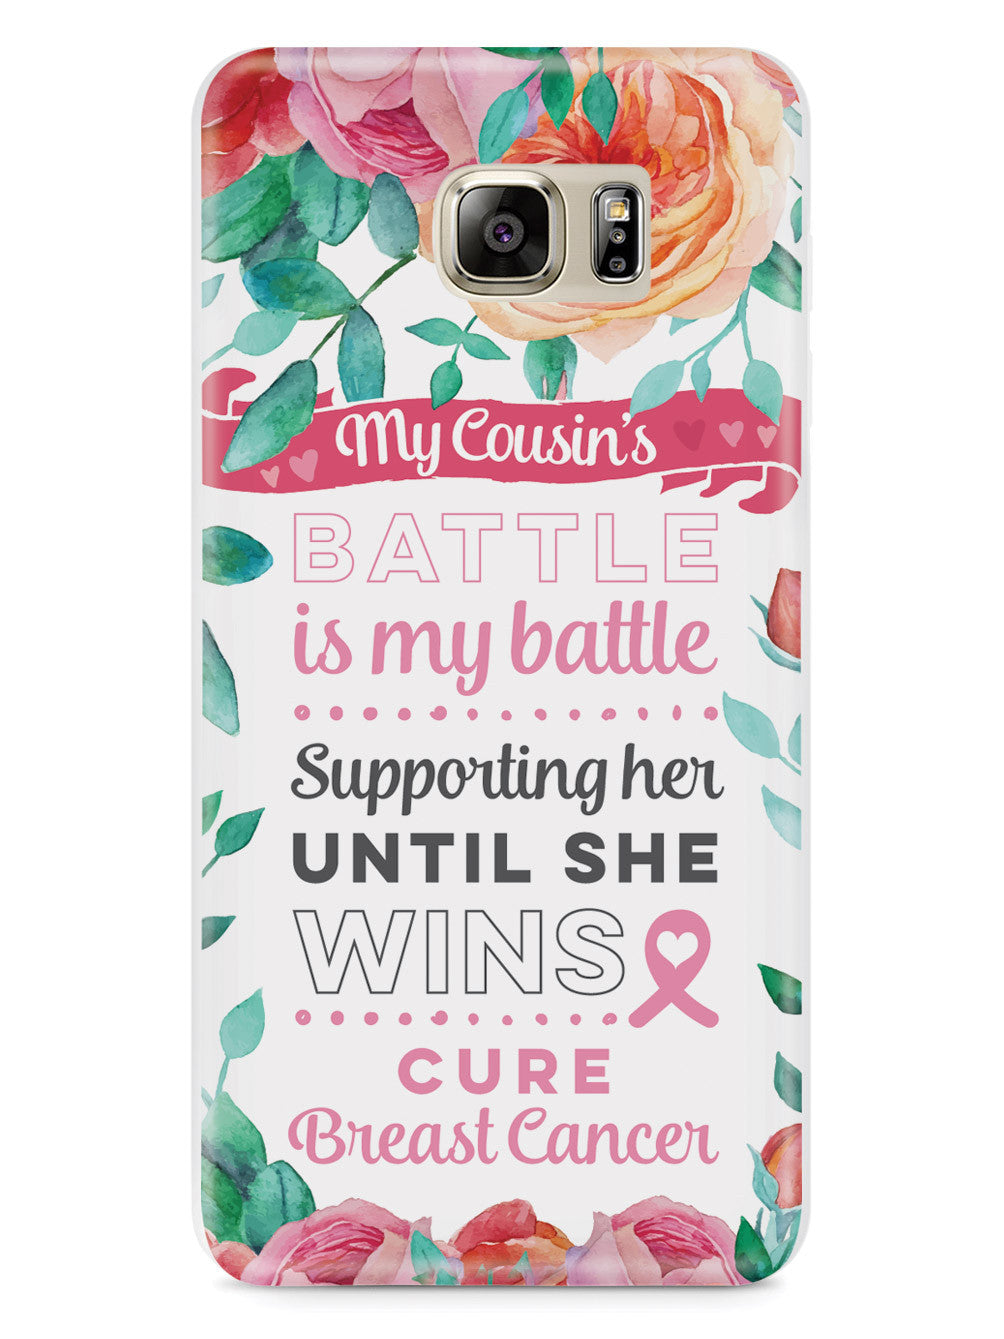 My Cousin's Battle (Female) - Breast Cancer Awareness Case